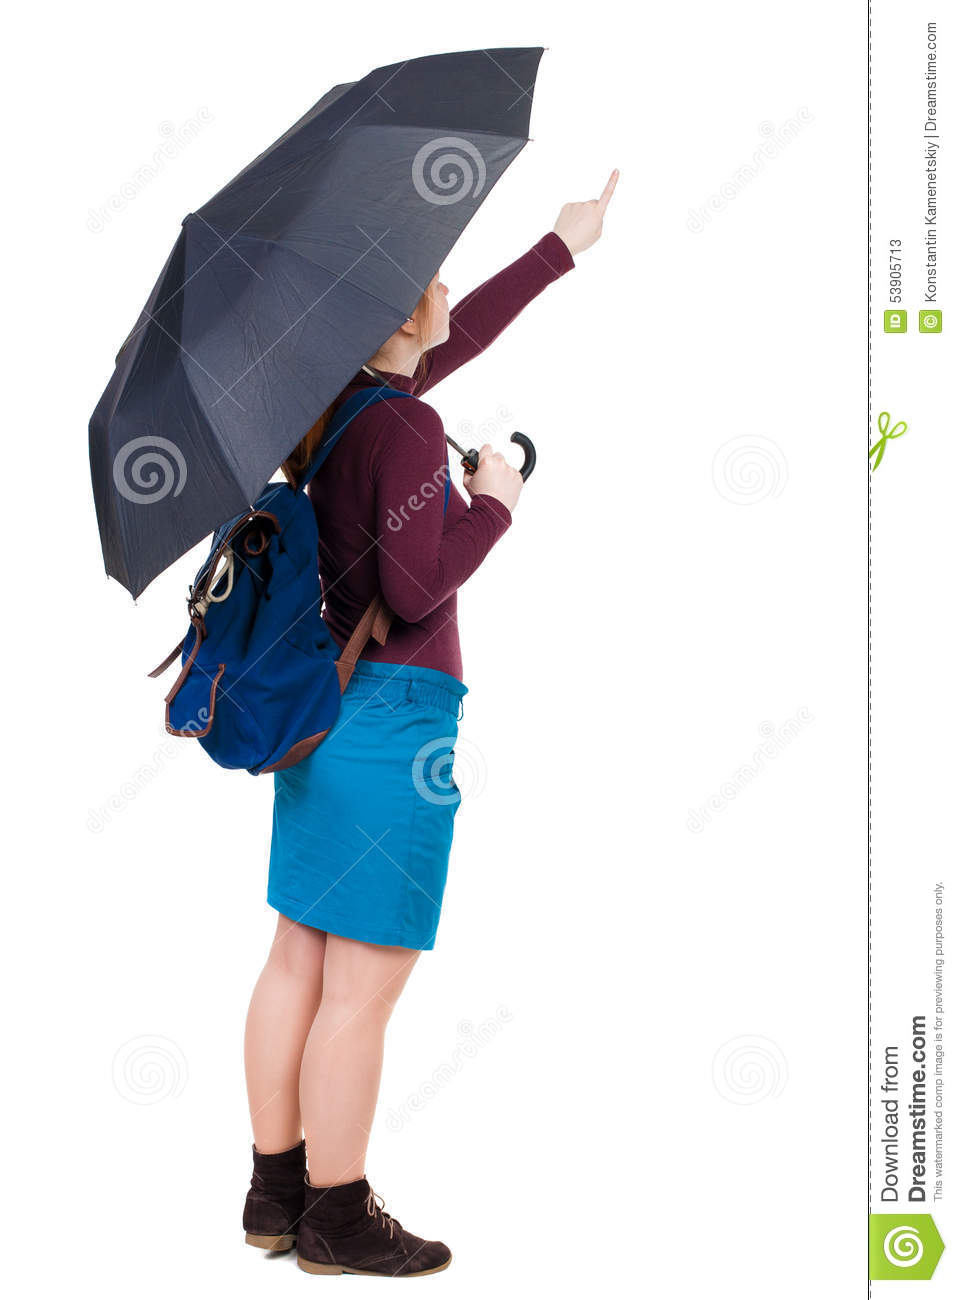 38c230ecee Pointing Woman With A Backpack Under An Umbrella. Stock Image ...